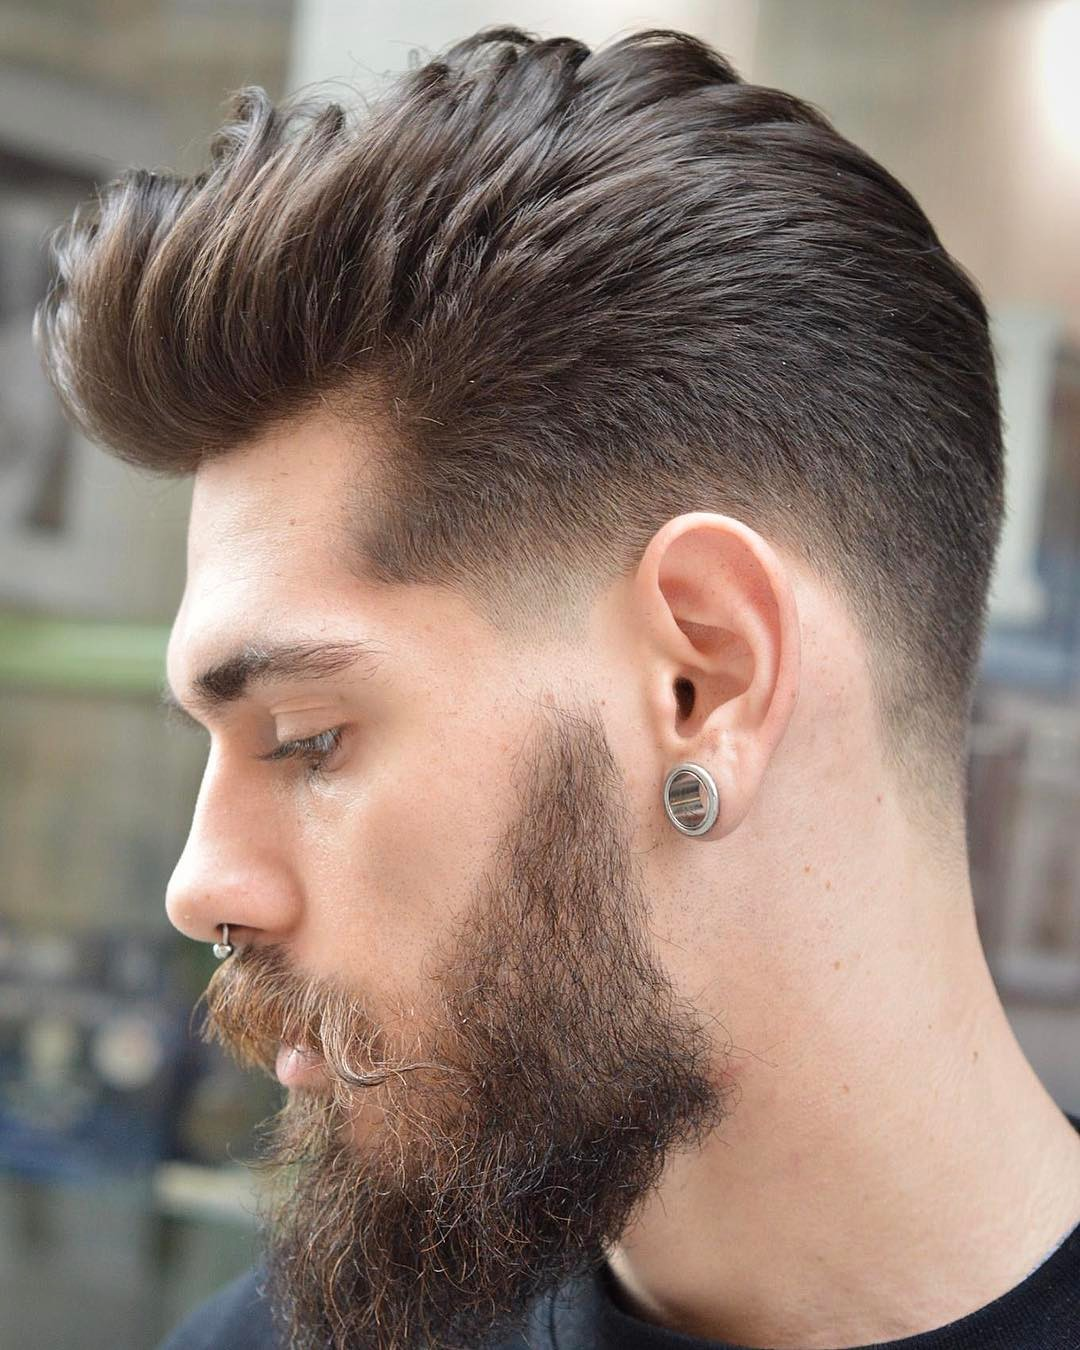 #1: Hipster Taper Fade